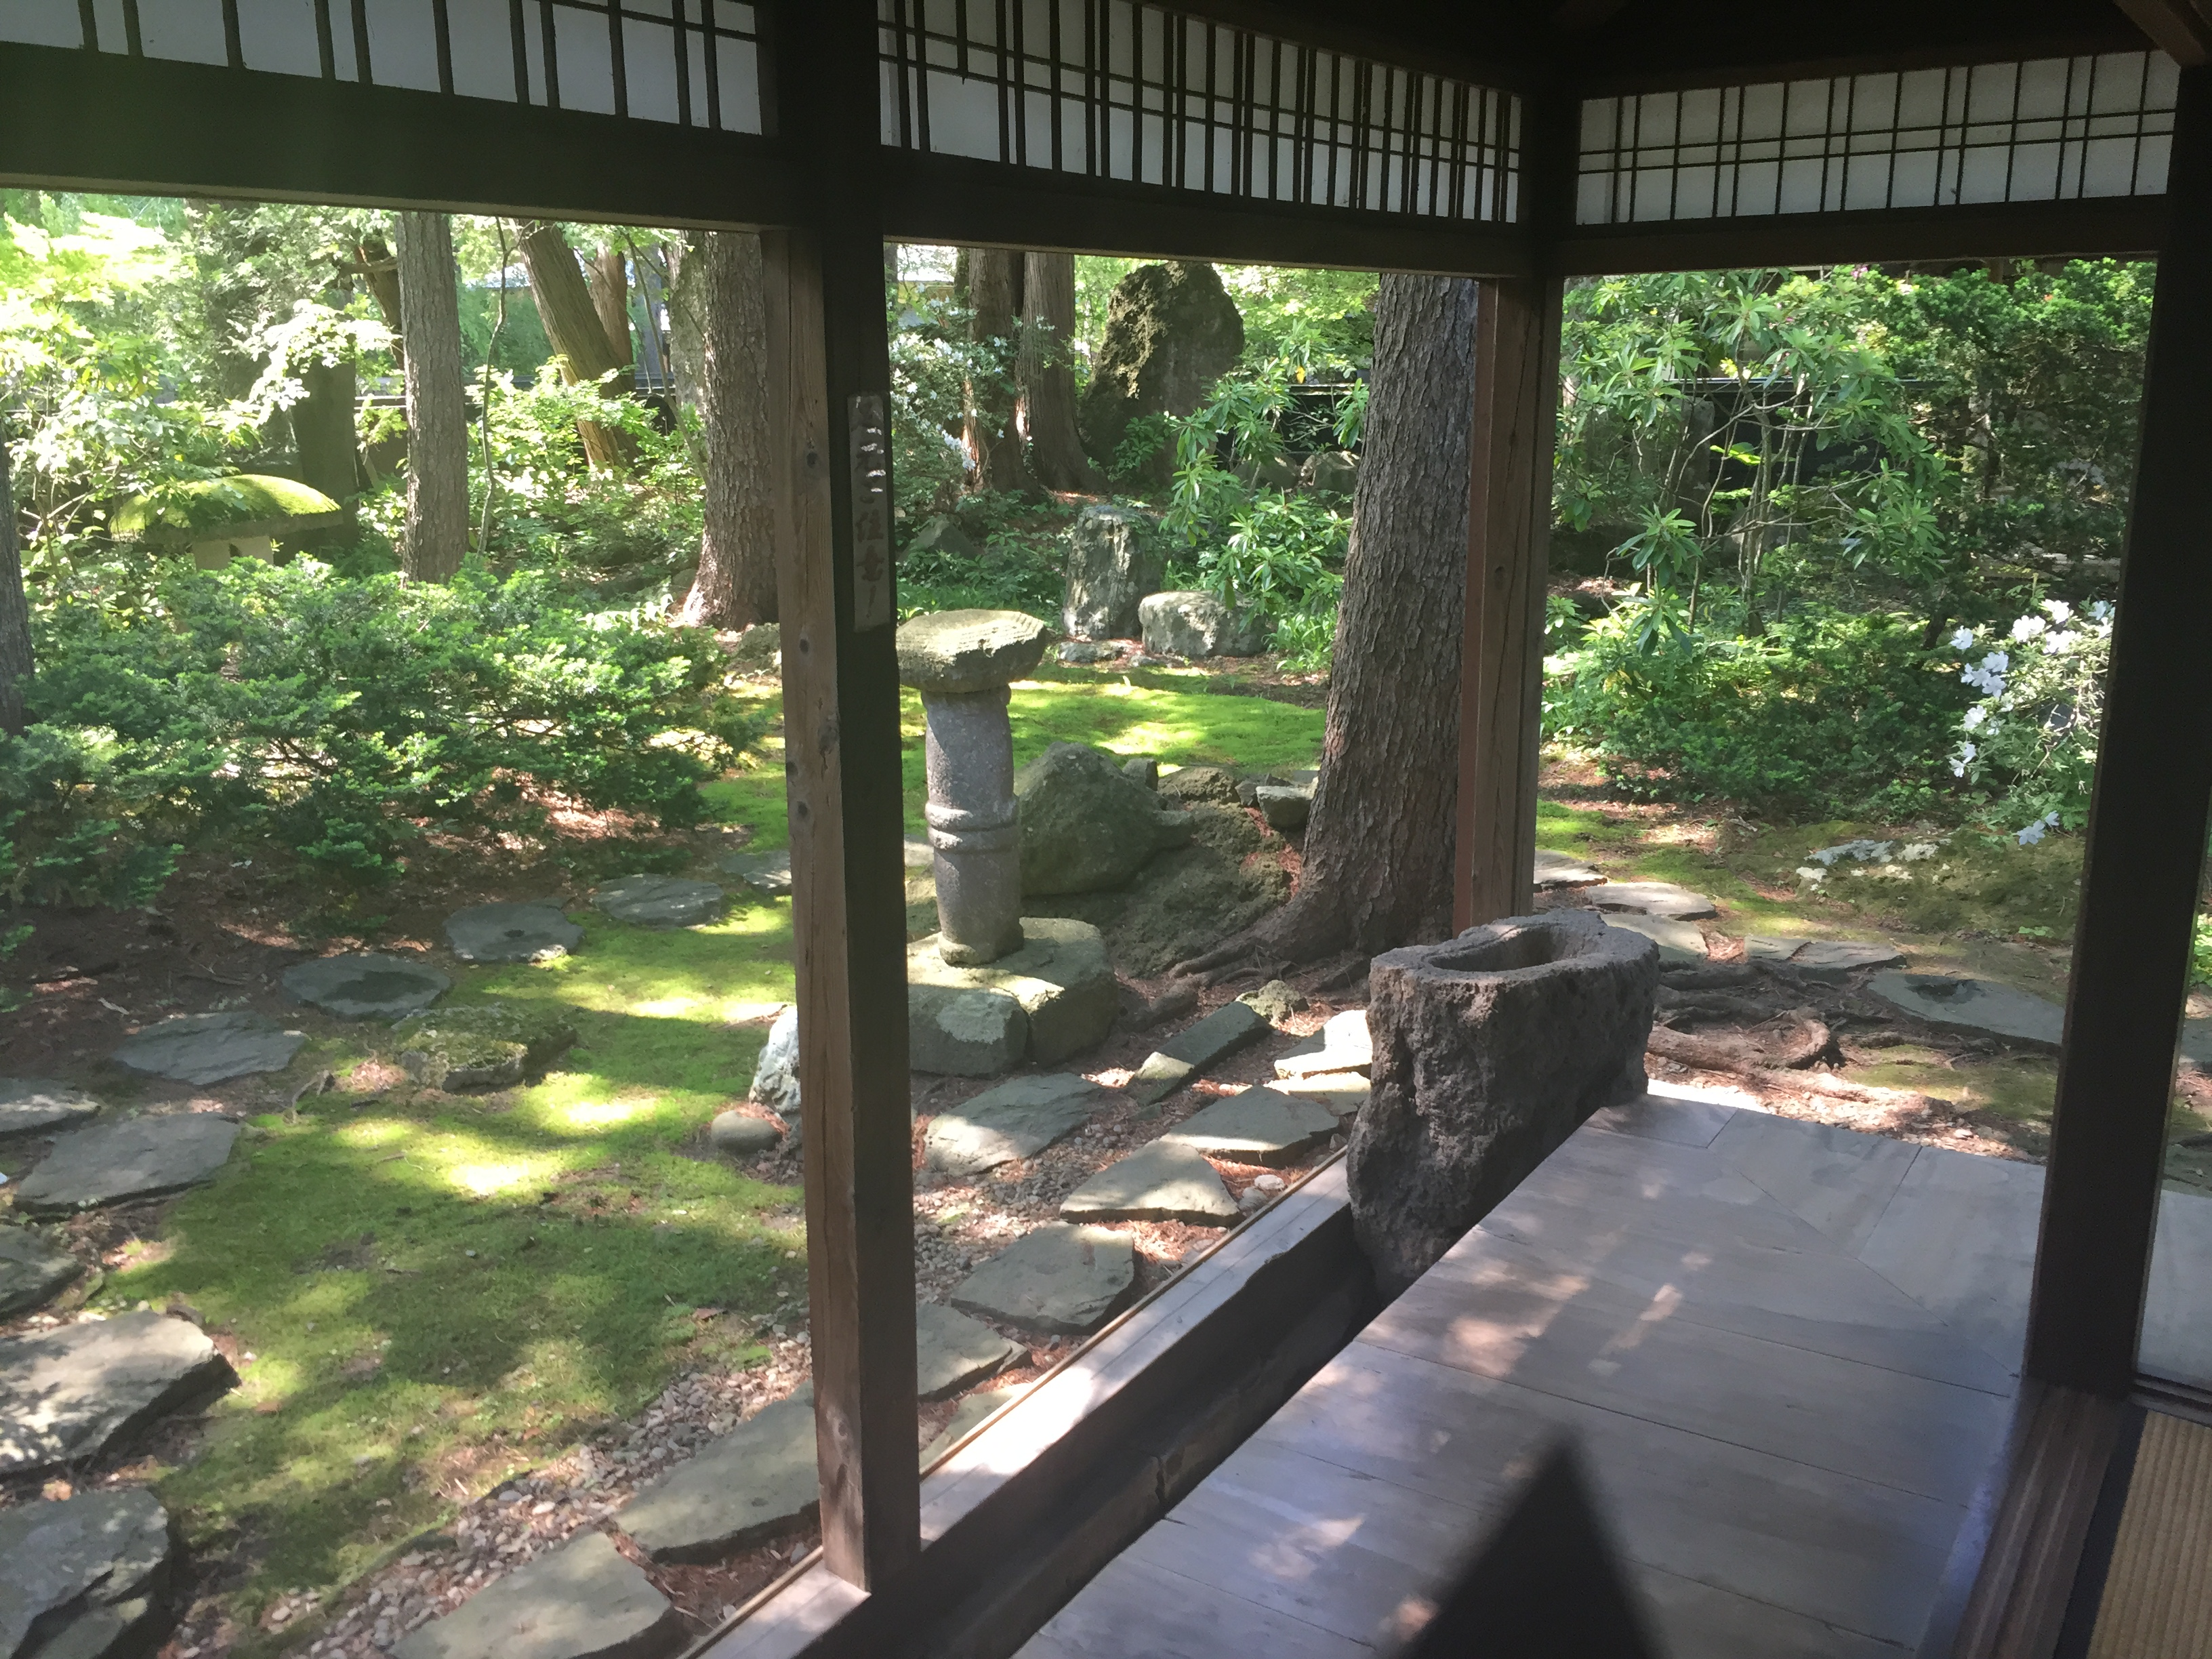 """the samurais garden thesis statement Thesis statement can be theme(s), analogies, character (s), comparison/contrast, or classification/division all thesis support/ examples/ evidence continue reading analysis of gail tsukiyama's novel """" the samurai's garden""""."""